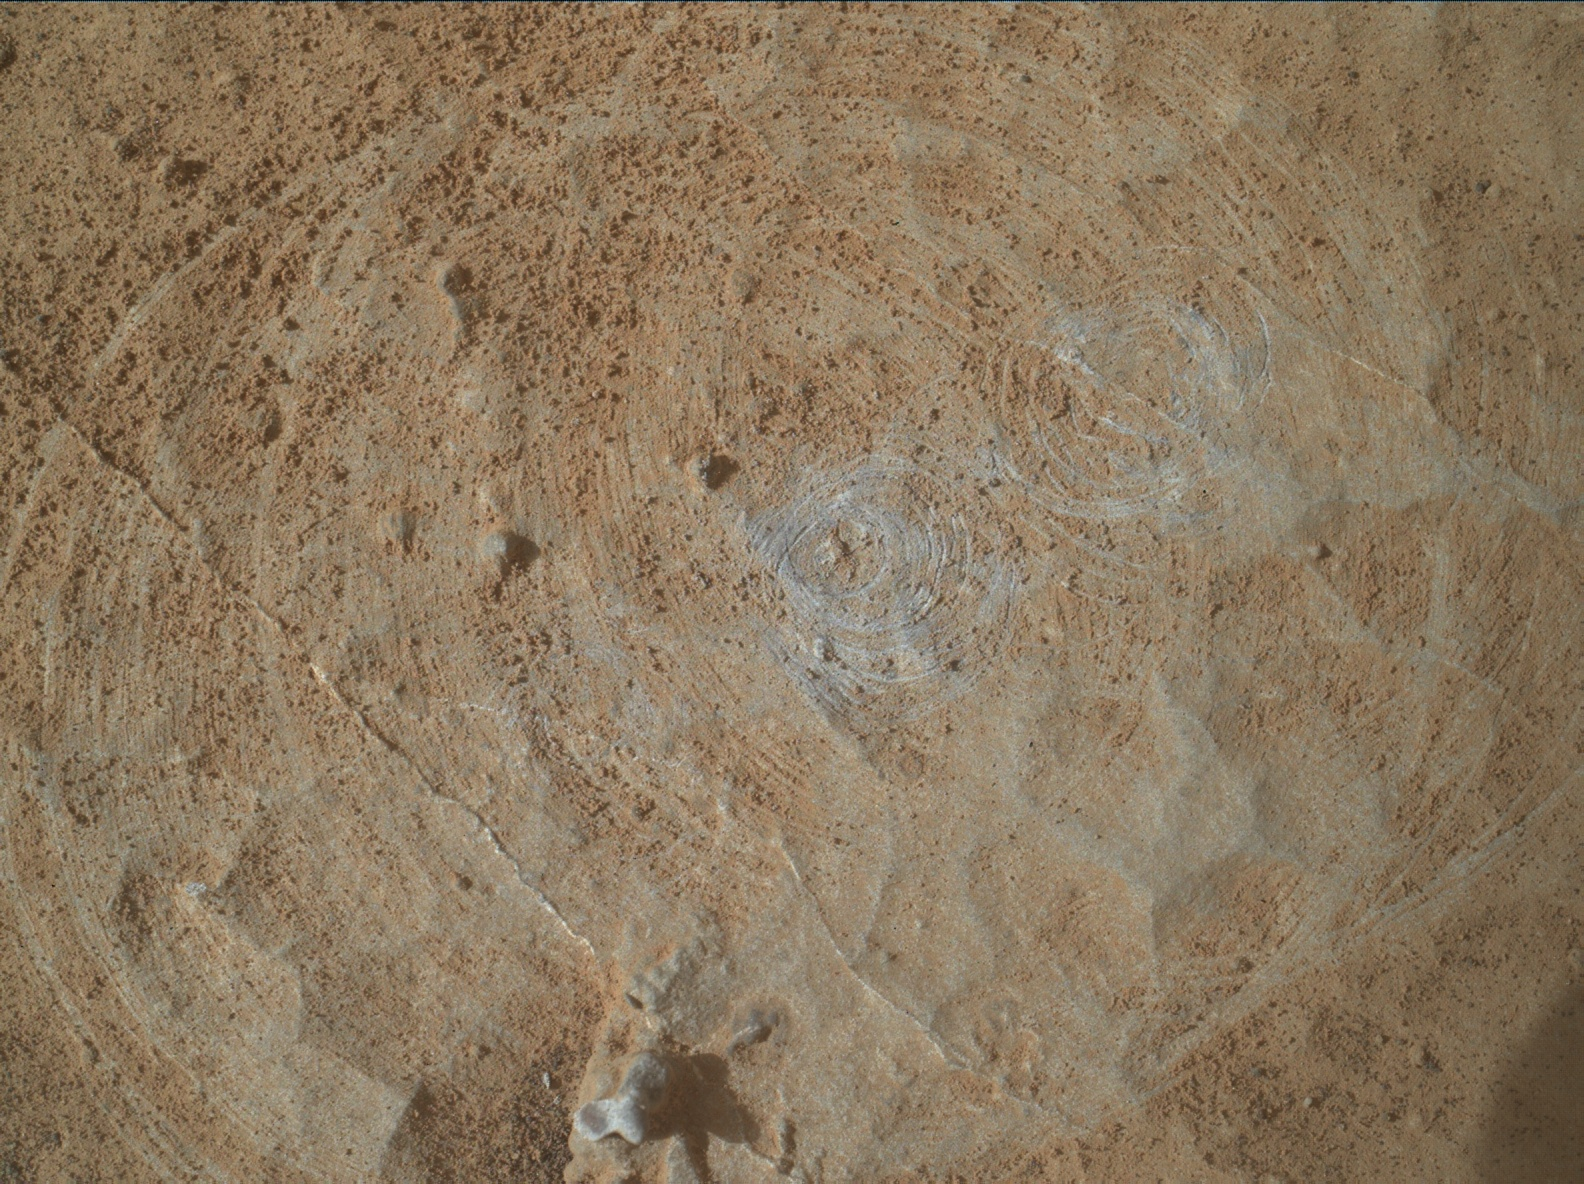 Nasa's Mars rover Curiosity acquired this image using its Mars Hand Lens Imager (MAHLI) on Sol 2660